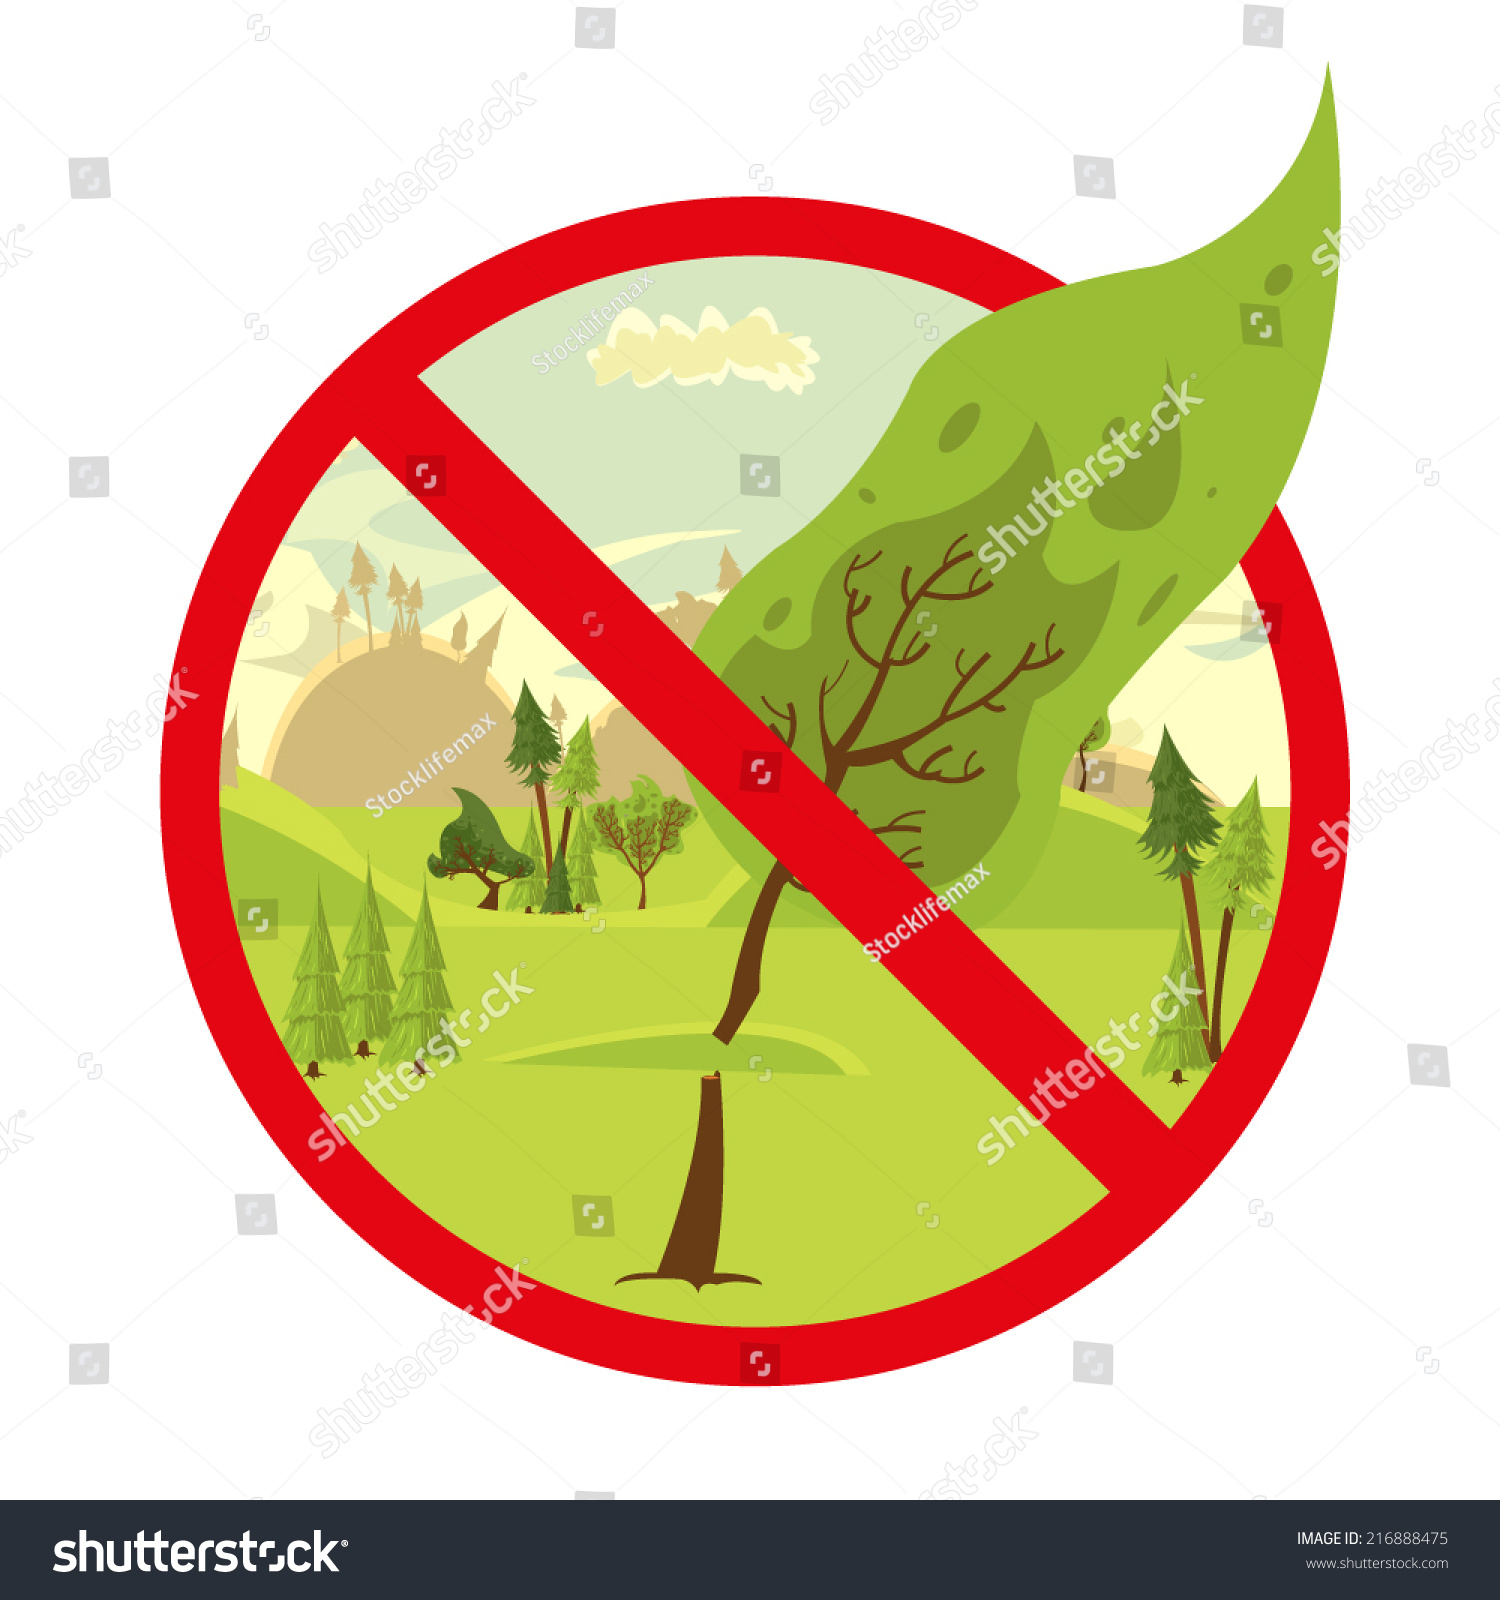 Sign Stop Cutting Down Trees Stop Stock Vector 216888475 ...